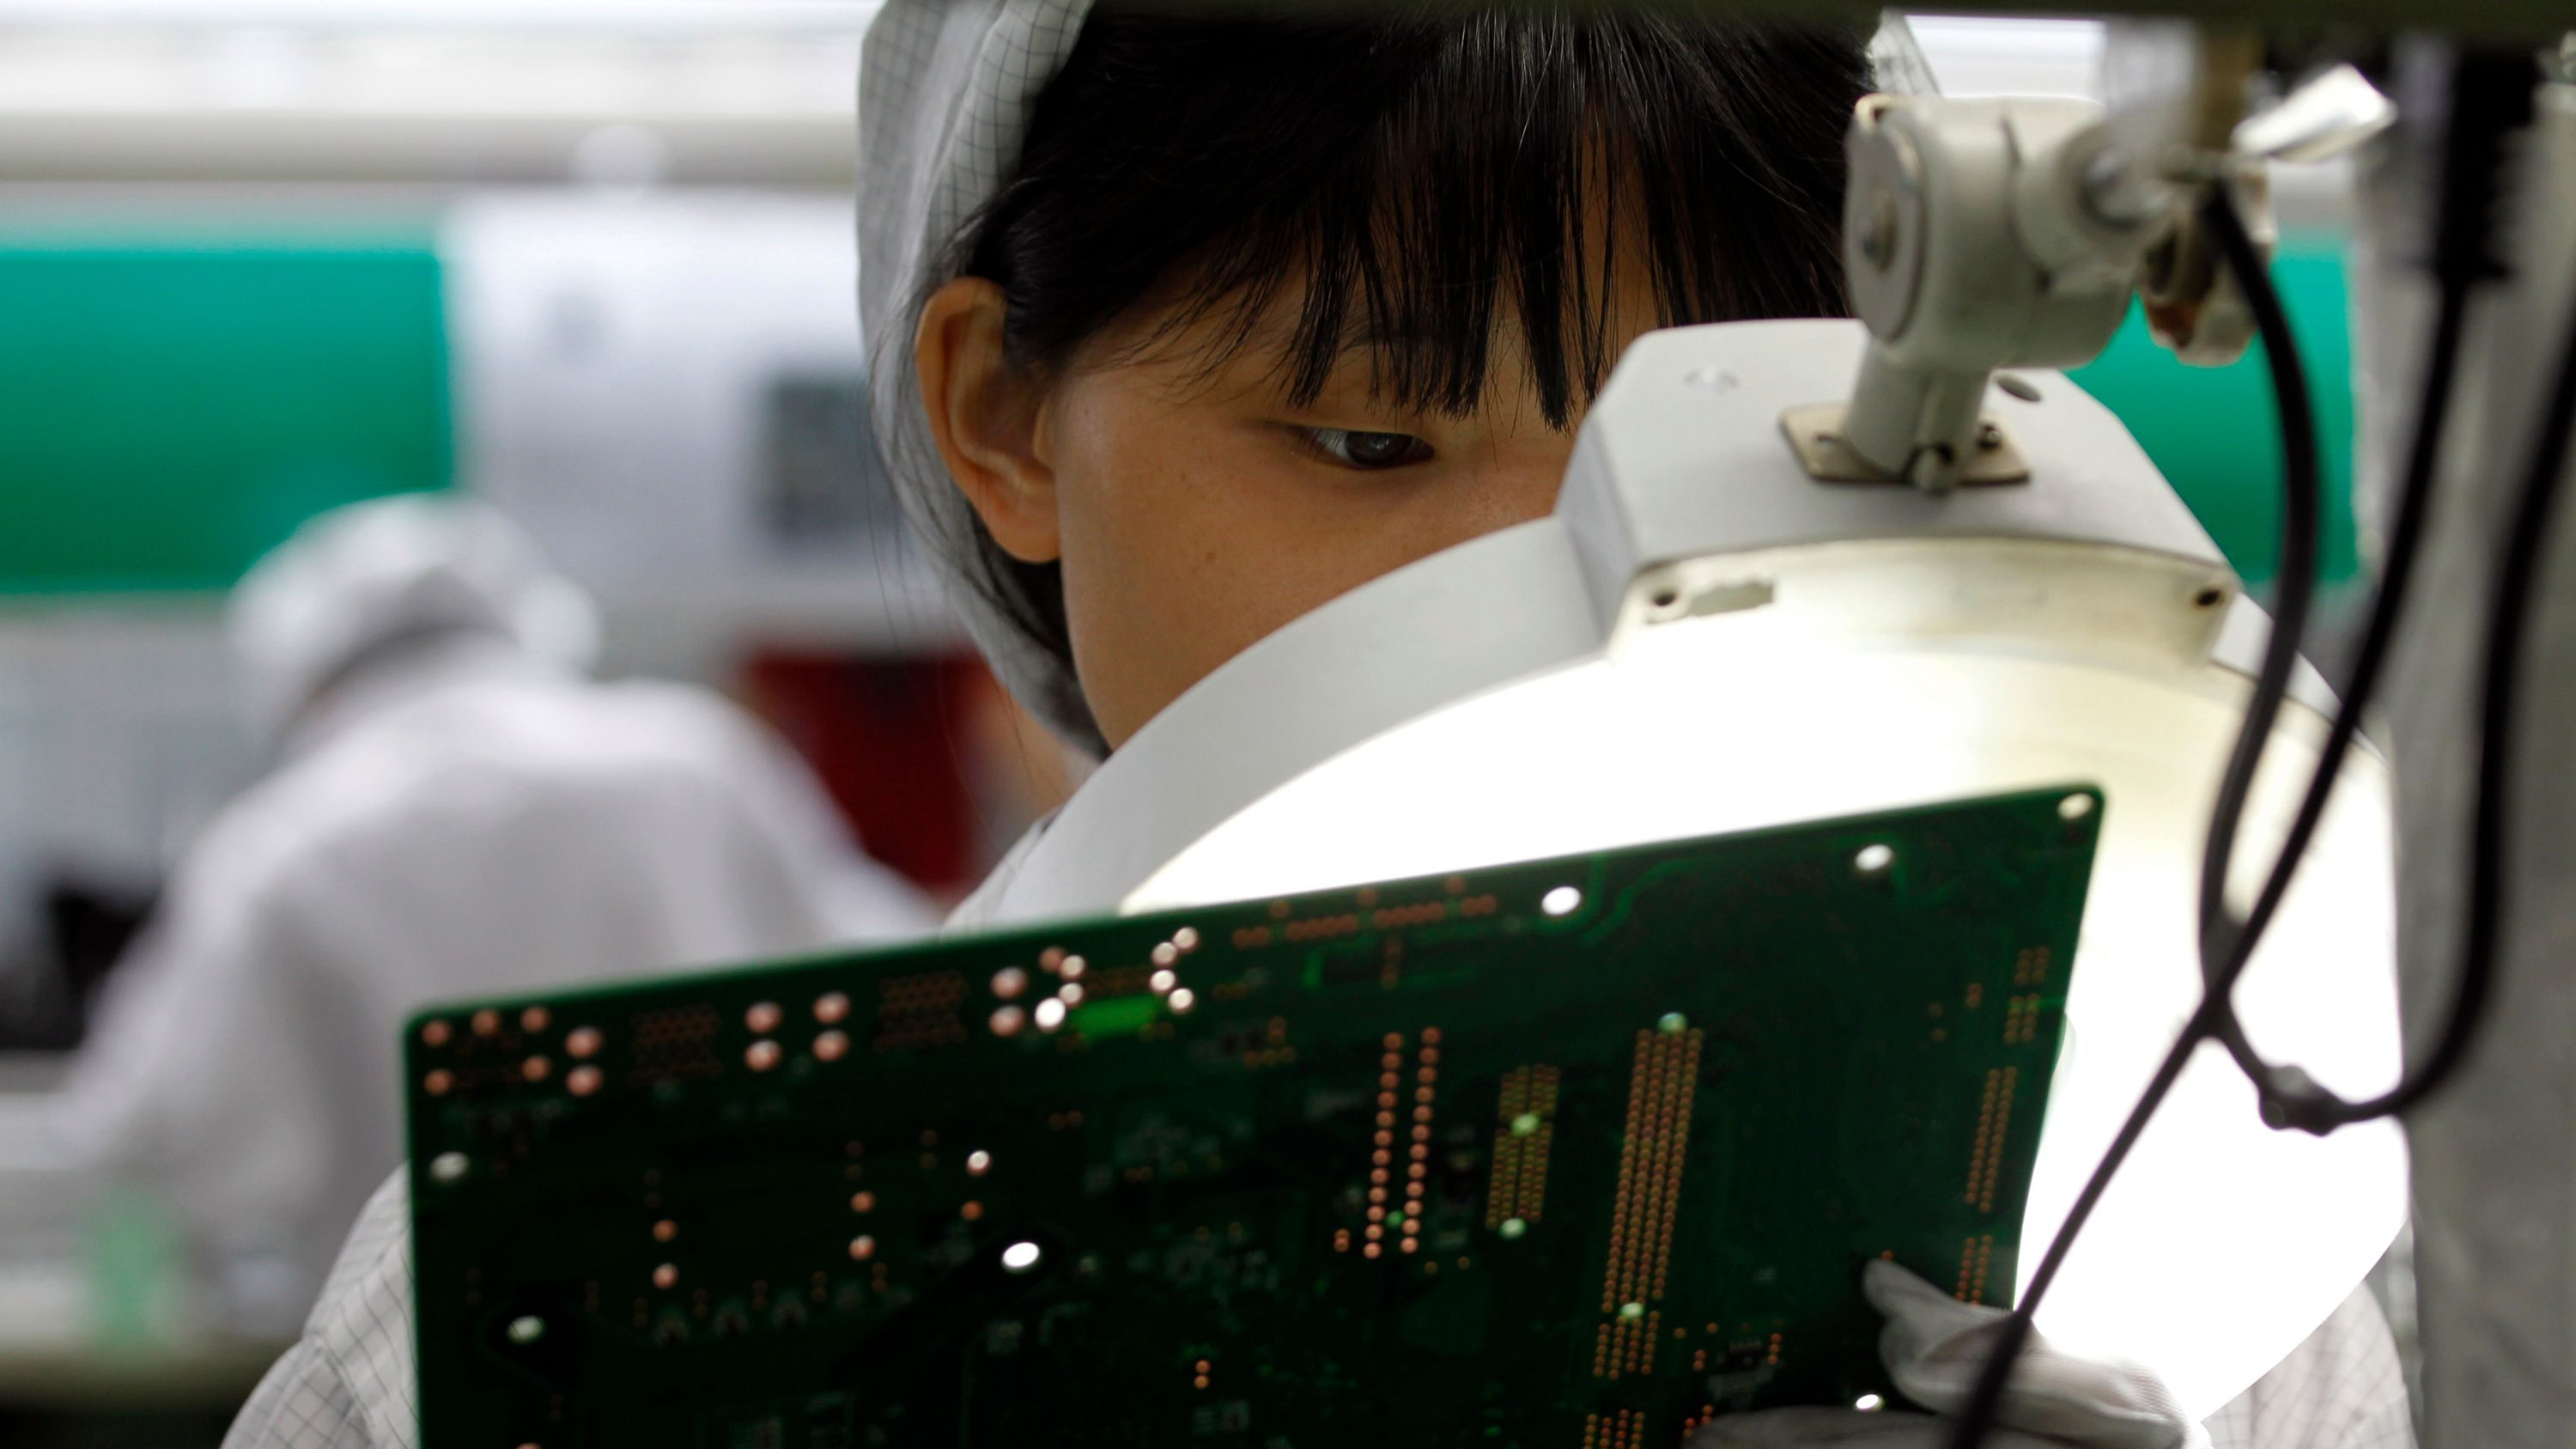 A worker examines a circuit board inside a Foxconn factory in the township of Longhua in the southern Guangdong province May 26, 2010. A spate of nine employee deaths at global contract electronics manufacturer Foxconn, Apple's main supplier of iPhones, has cast a spotlight on some of the harsher aspects of blue-collar life on the Chinese factory floor.